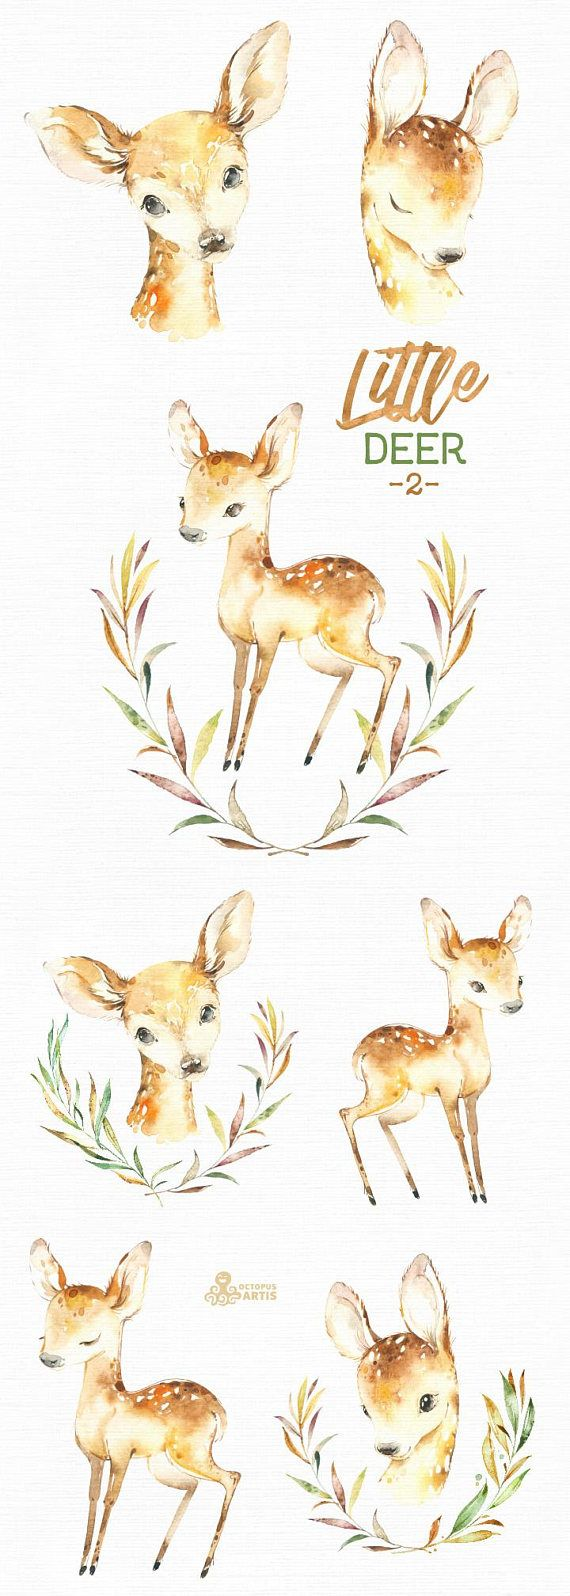 This Little Deer - 2 set of 11 high quality hand painted watercolor images. Perfect graphic for any projects, babyshowers, wedding invitations, greeting cards, photos, posters, quotes and more. ----------------------------------------------------------------- This listing includes: 11 x